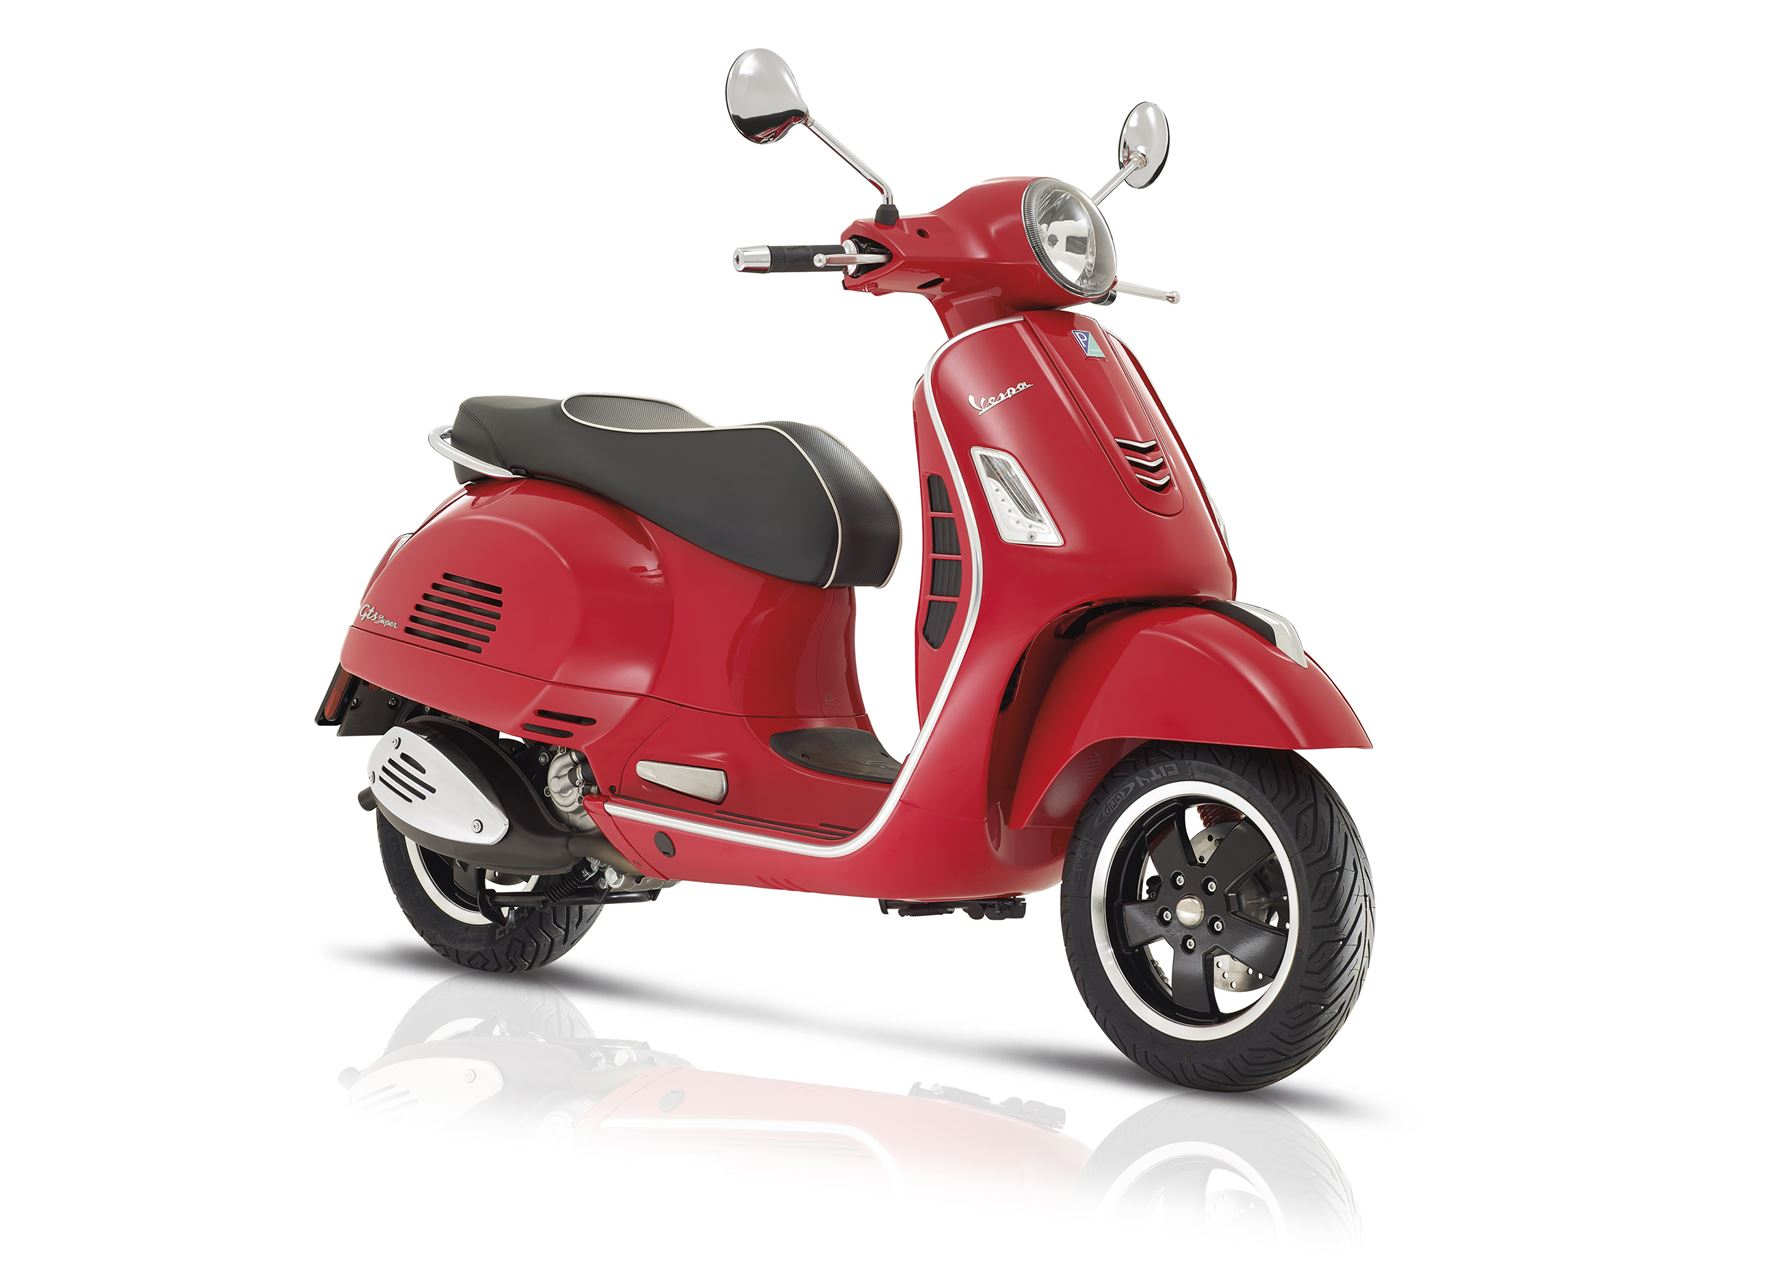 vespa gts 125 super scooter gama 125cc lombas e curvas. Black Bedroom Furniture Sets. Home Design Ideas